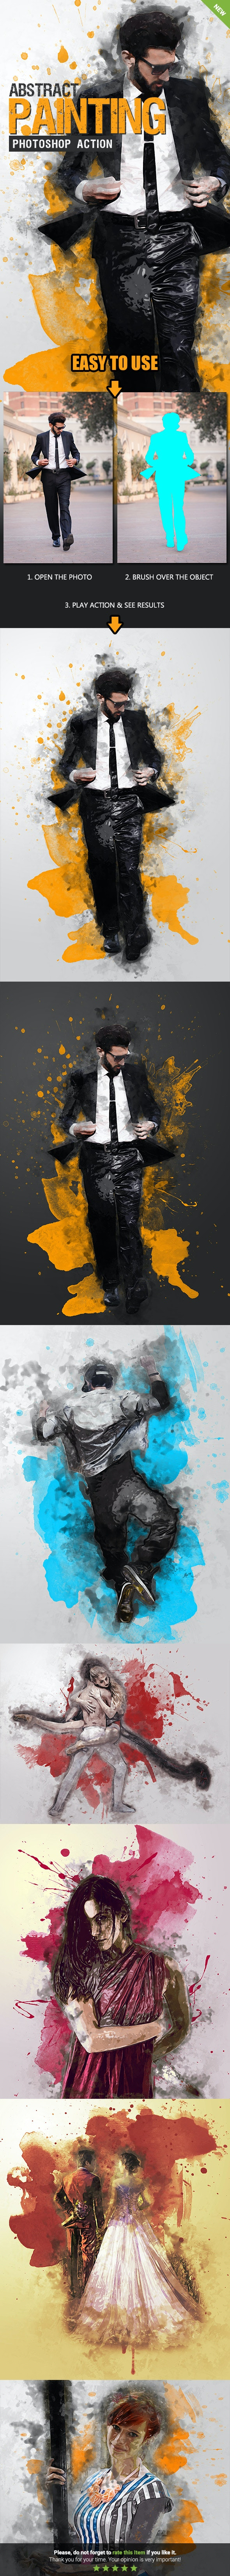 Abstract Painting Photoshop Action by SmartestMind